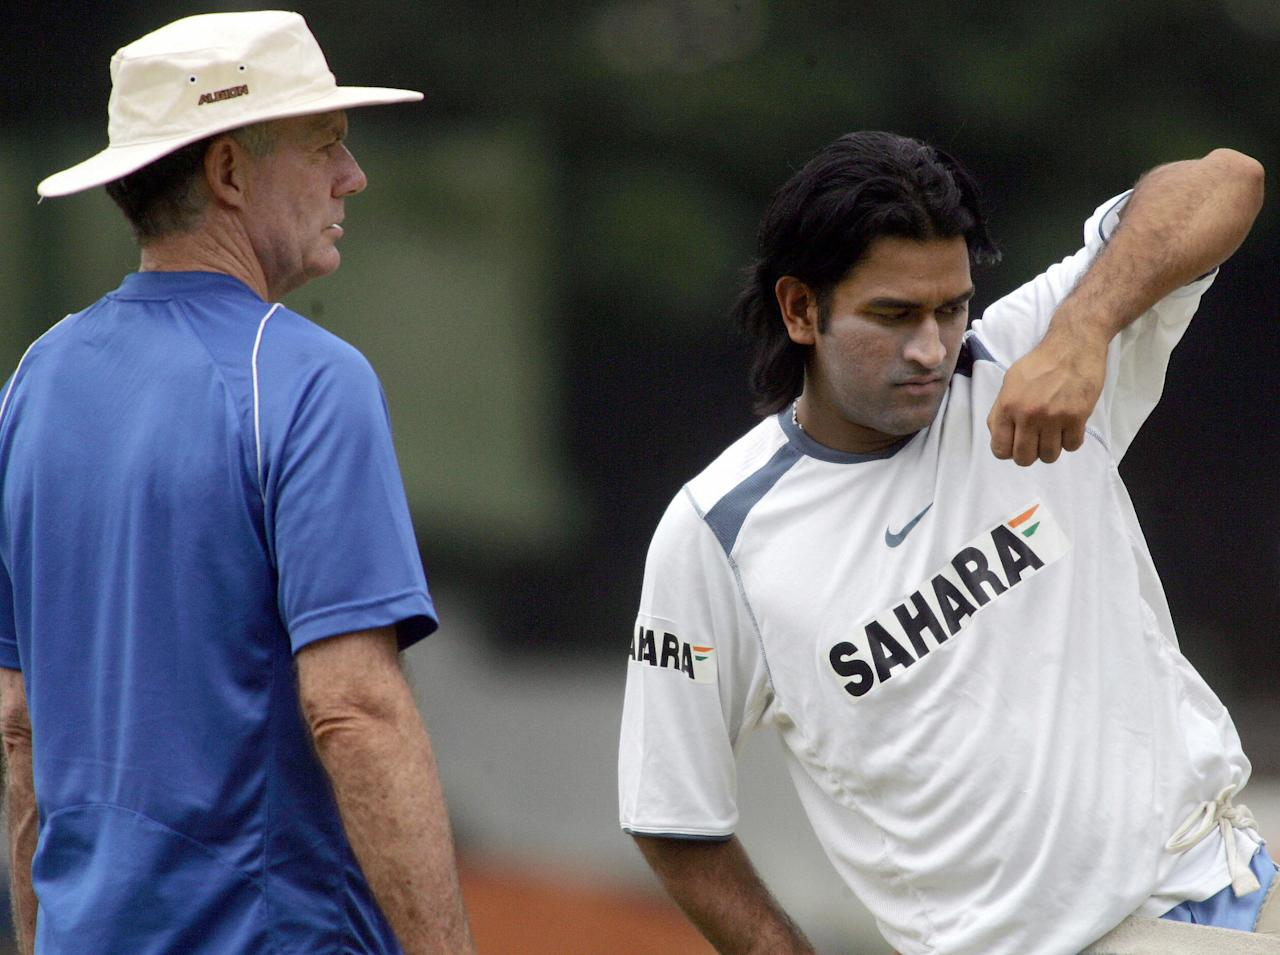 Bangalore, INDIA:  Indian cricket coach Greg Chappell (L) looks on as Mahendra Singh Dhoni practices a batting technique during a practice session at The National Cricket Academy (NCA) in Bangalore, 02 September 2006.  A nine day long training camp for Indian cricketers in preparation for the forthcoming tri-series with Australia and West indies in Malaysia, is continuing in the southern Indian city.    AFP PHOTO/Dibyangshu SARKAR  (Photo credit should read DIBYANGSHU SARKAR/AFP/Getty Images)